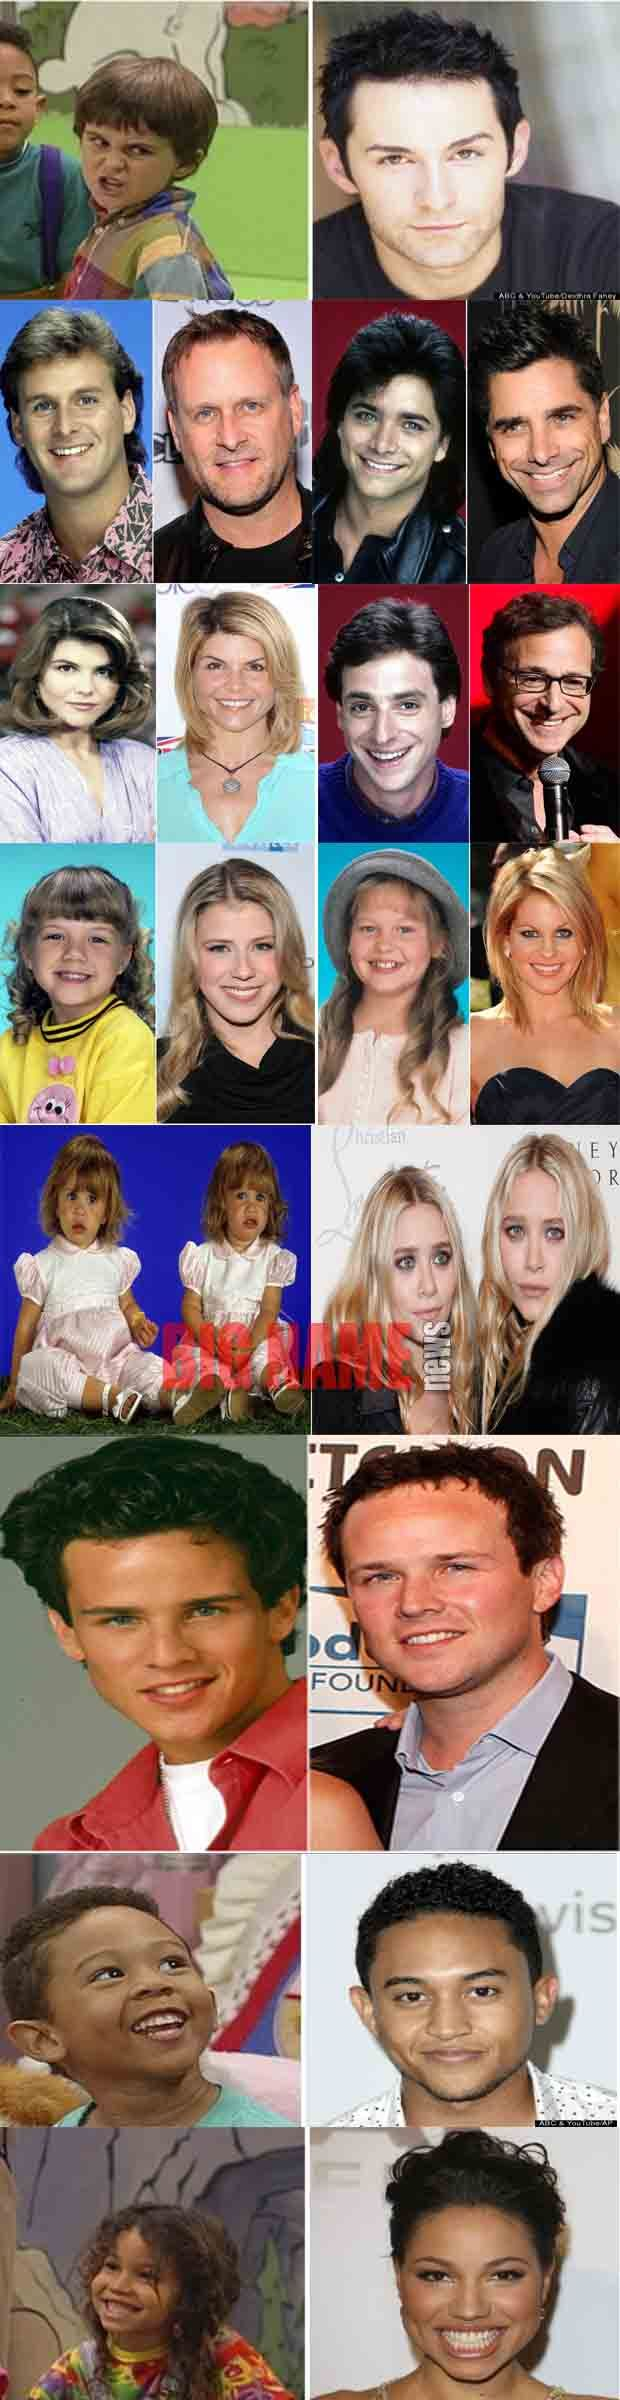 Full House Cast Then And Now Weird How Some People Have Changed A